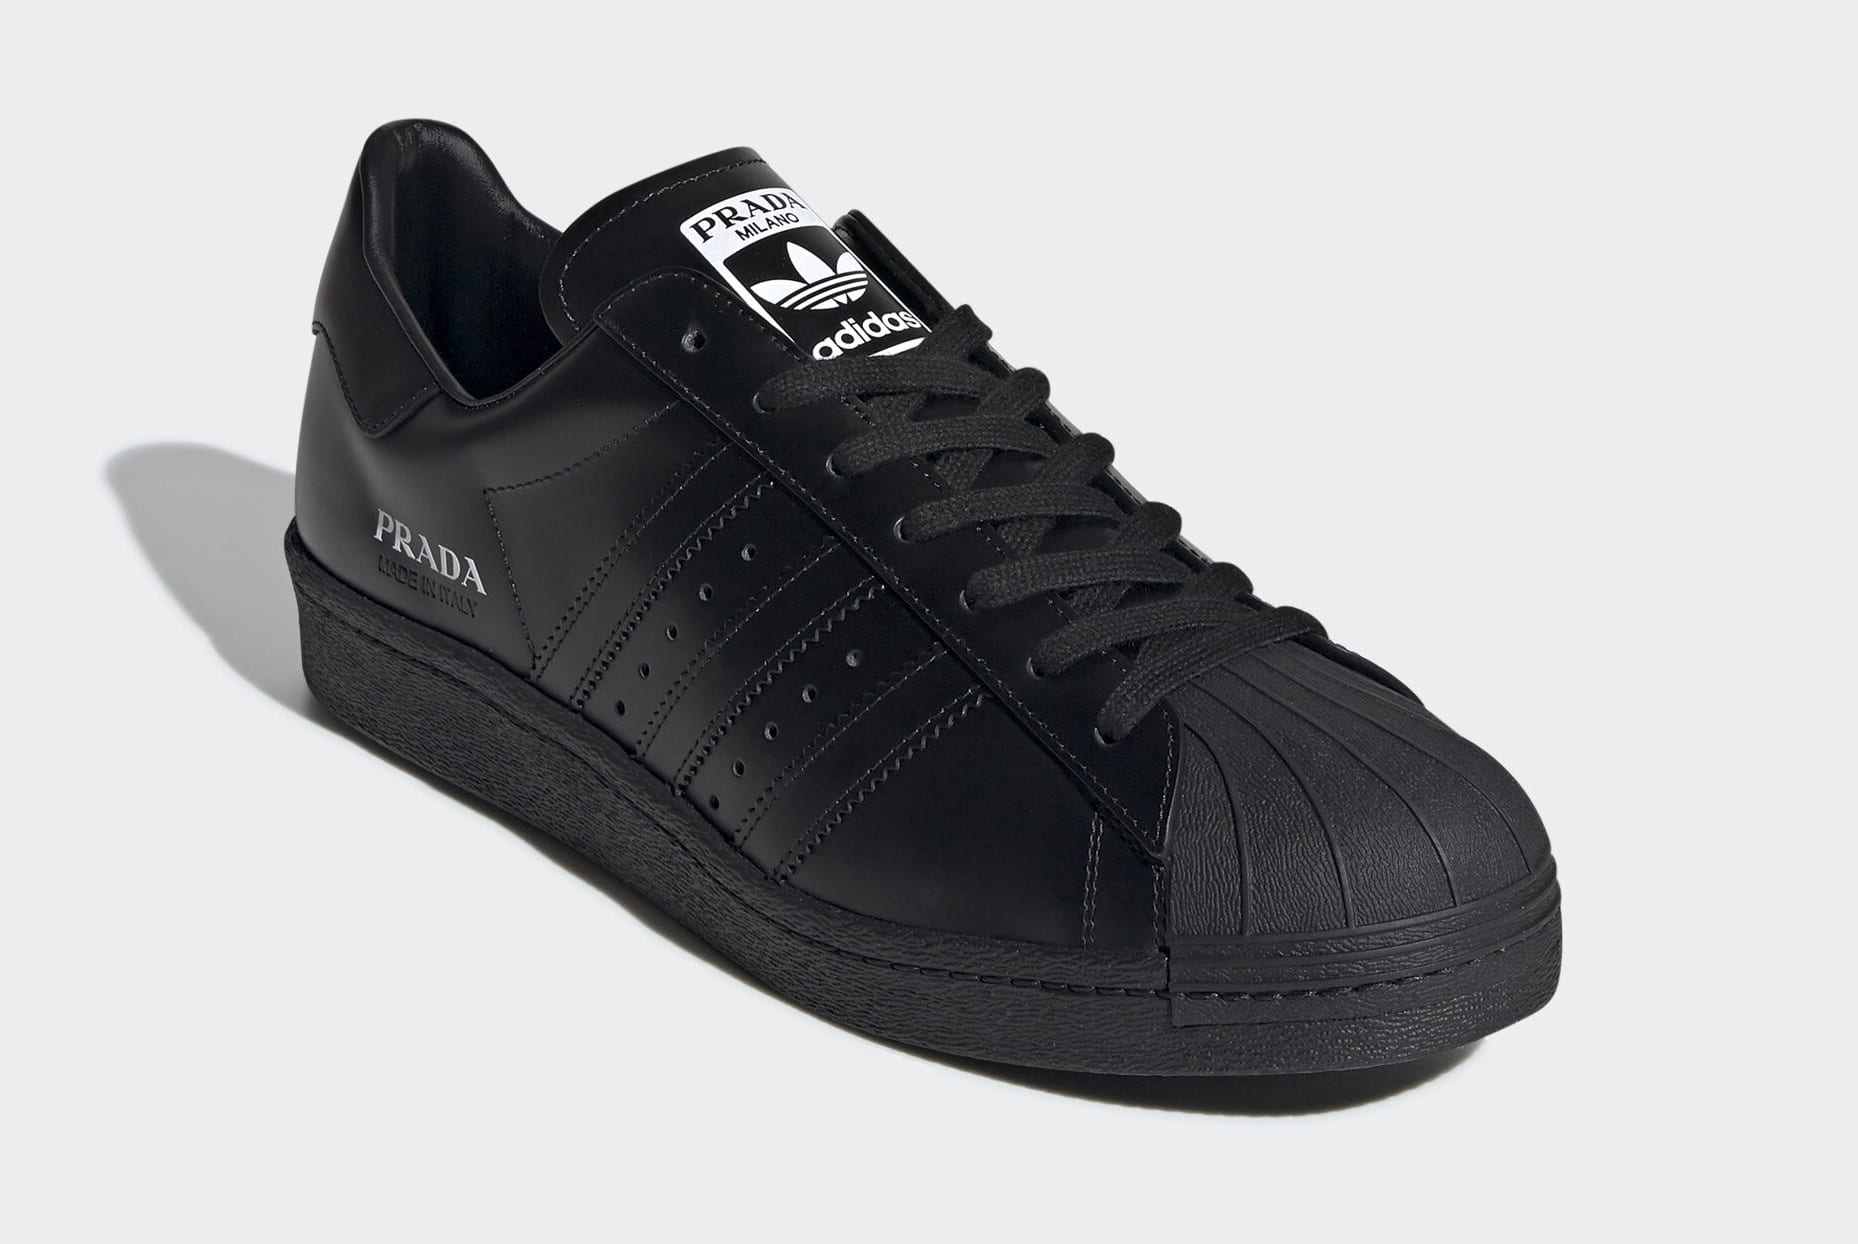 prada-adidas-superstar-black-fw6679-front